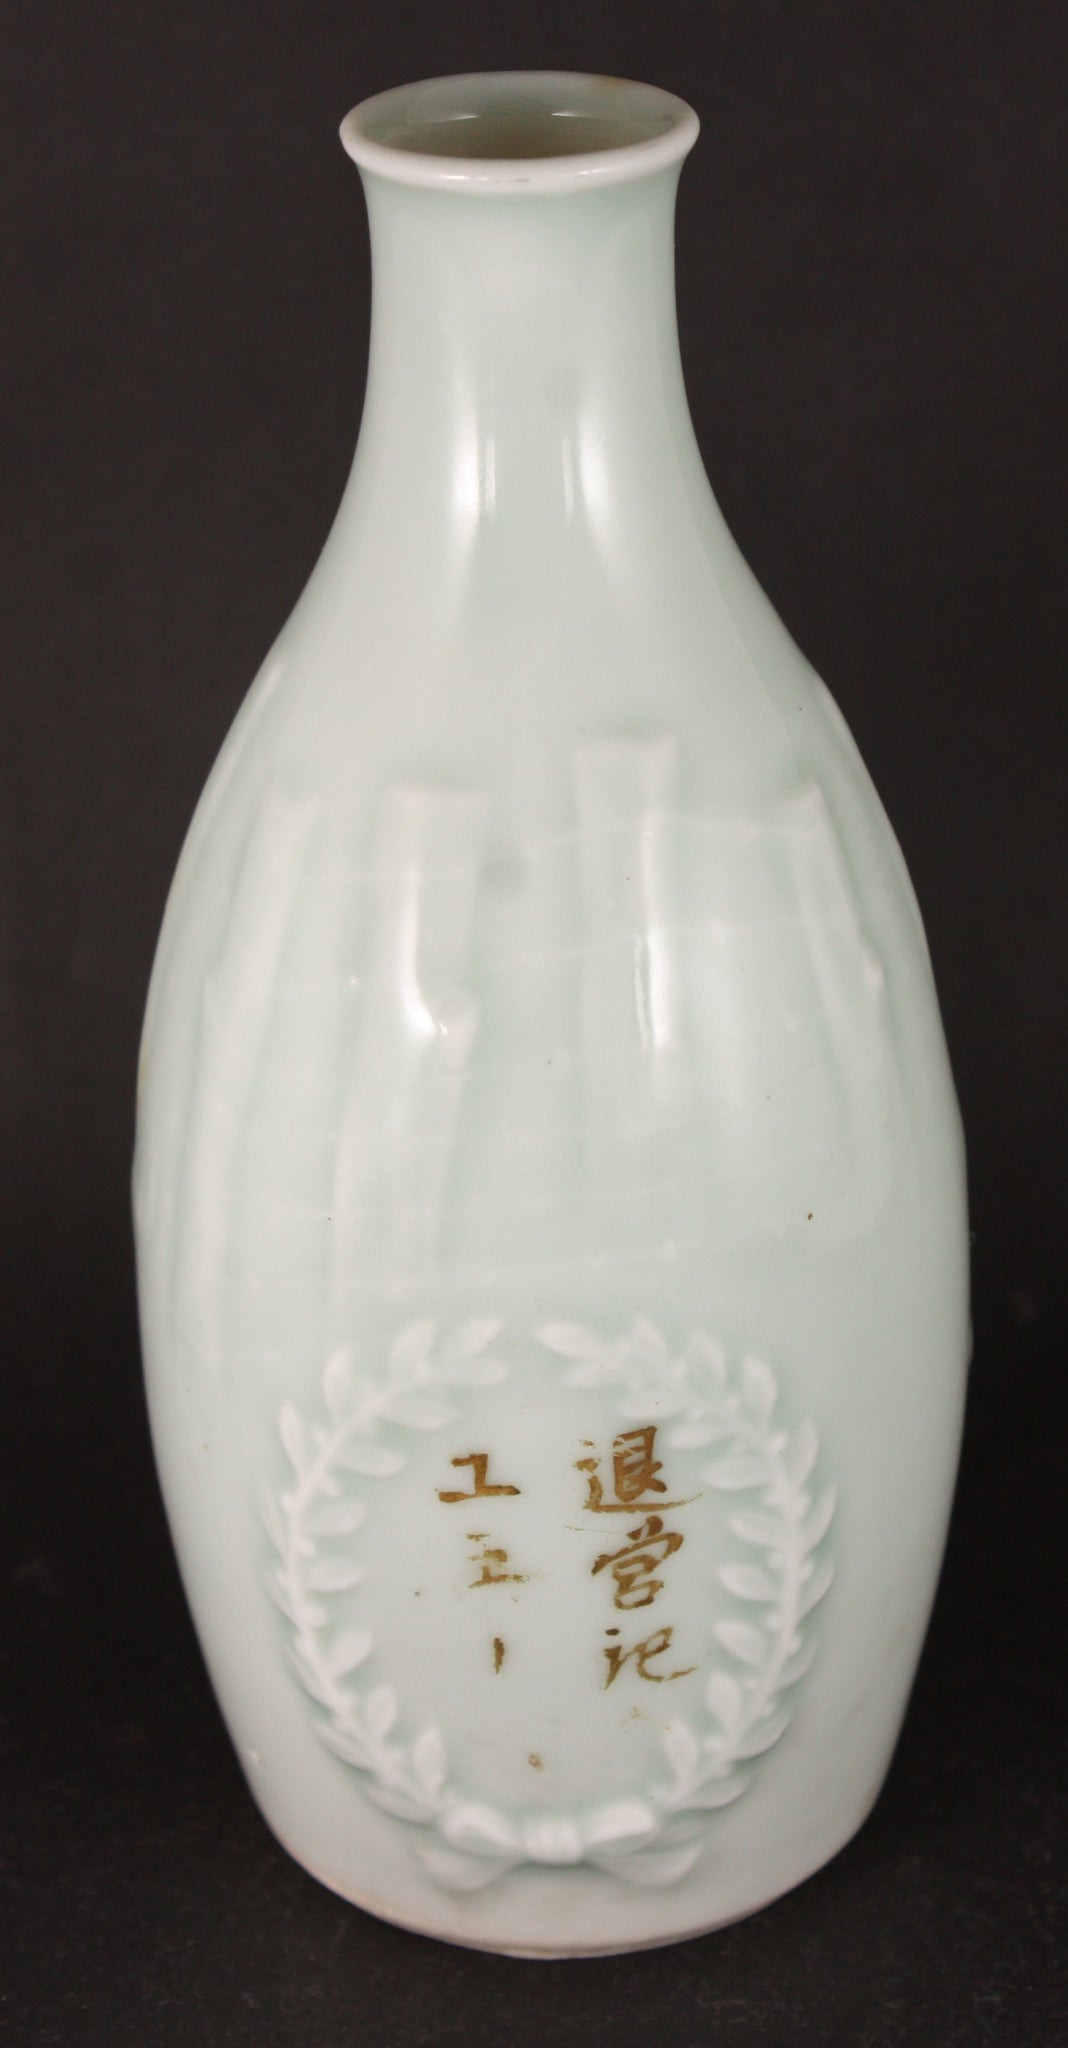 Very Rare Antique Japanese Military Three Human Bombs Shanghai Incident Army Sake Bottle